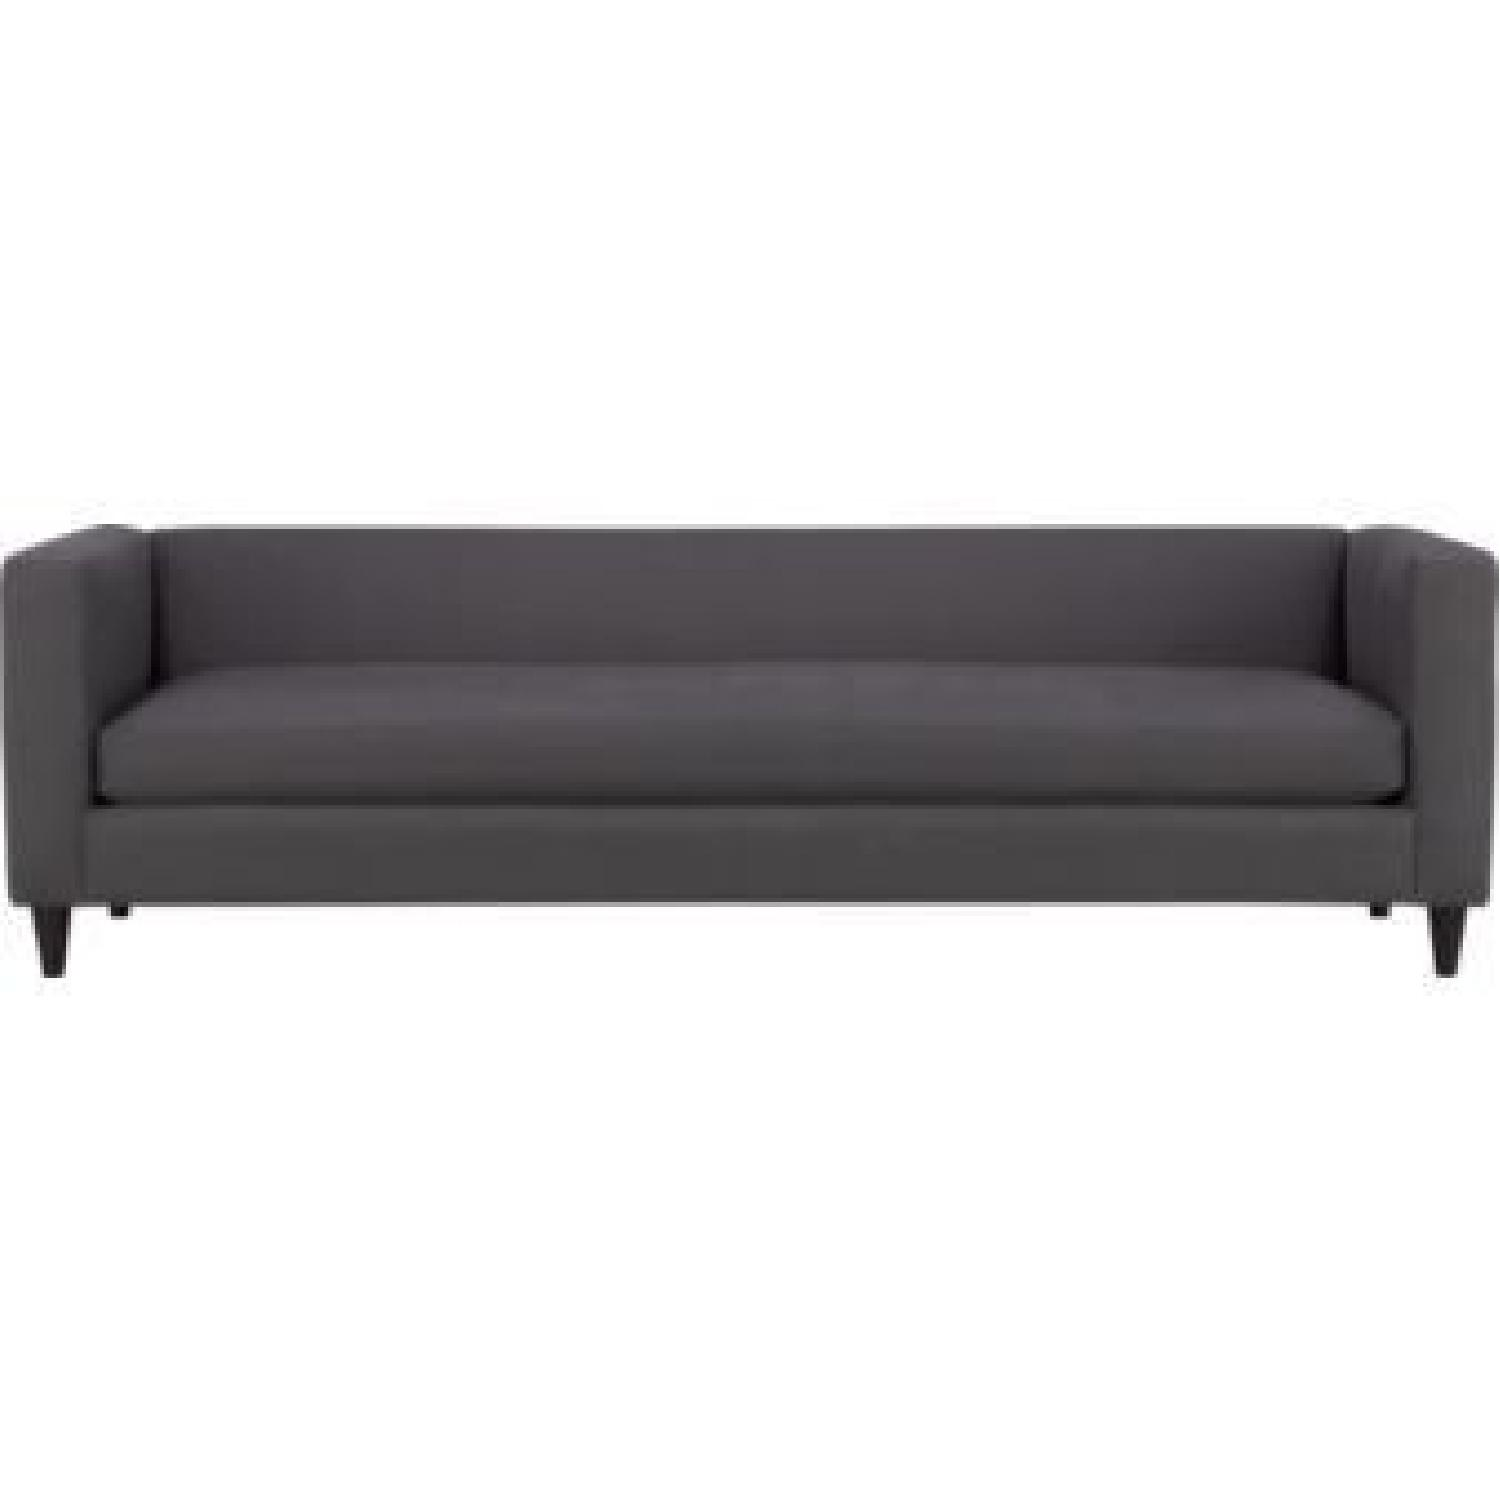 CB2 Movie Sofa in Dark Grey/Blue